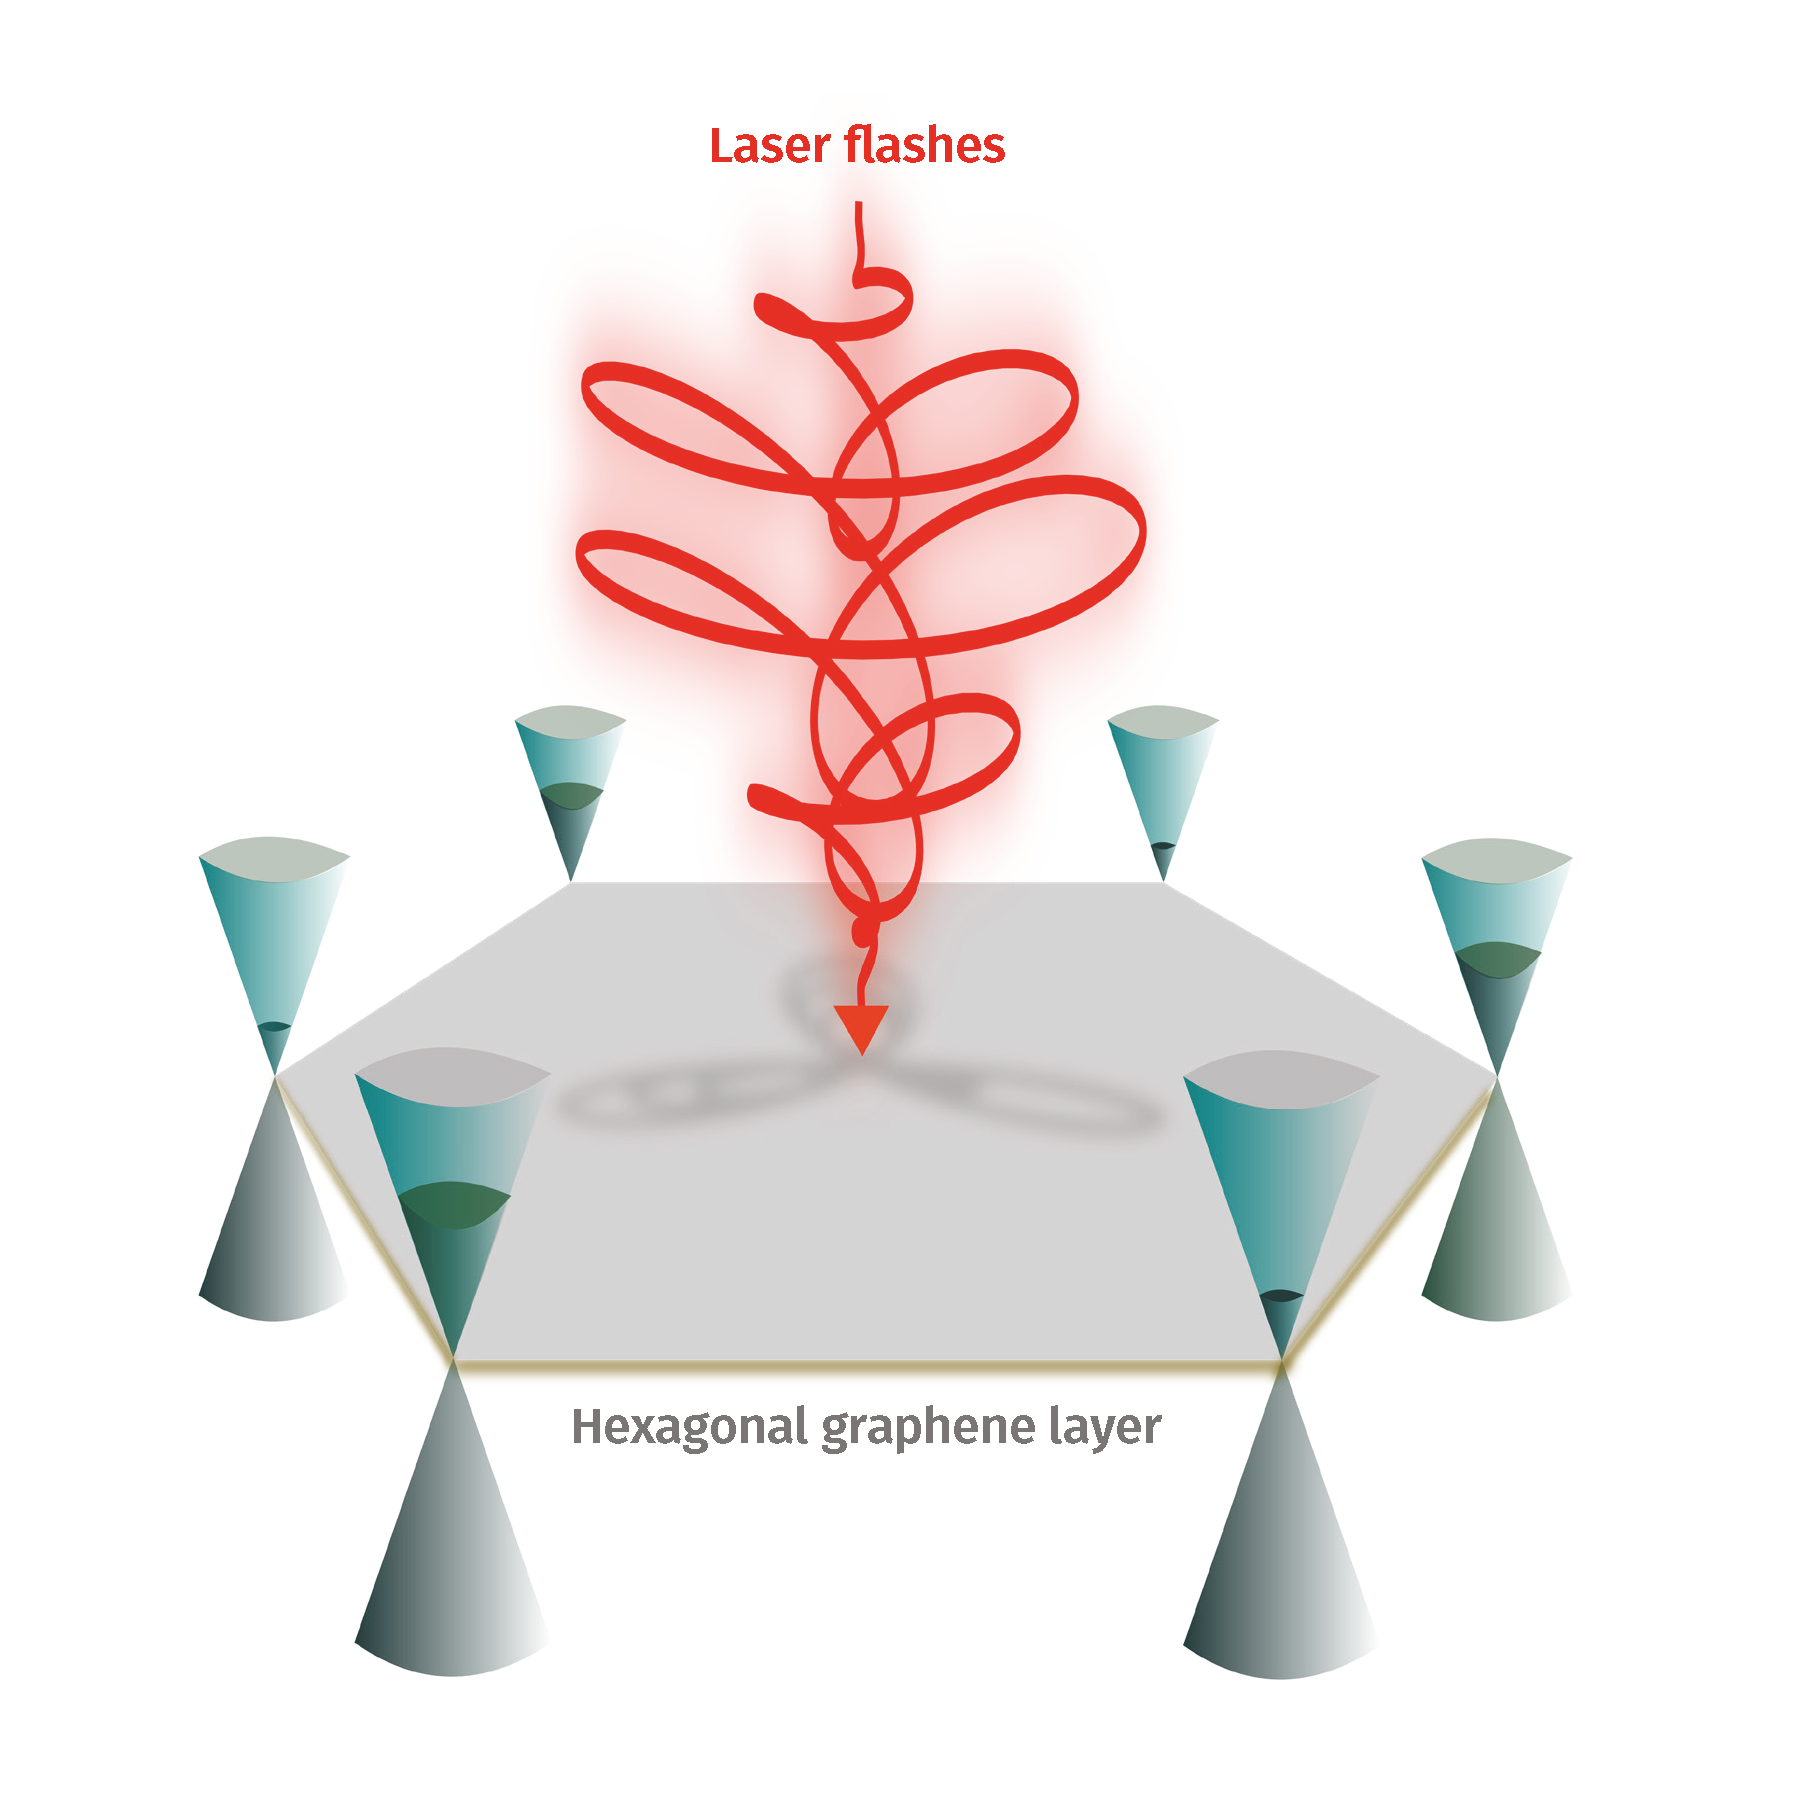 Can Graphene Valleytrionics Pave the Way to Household Quantum Computers?